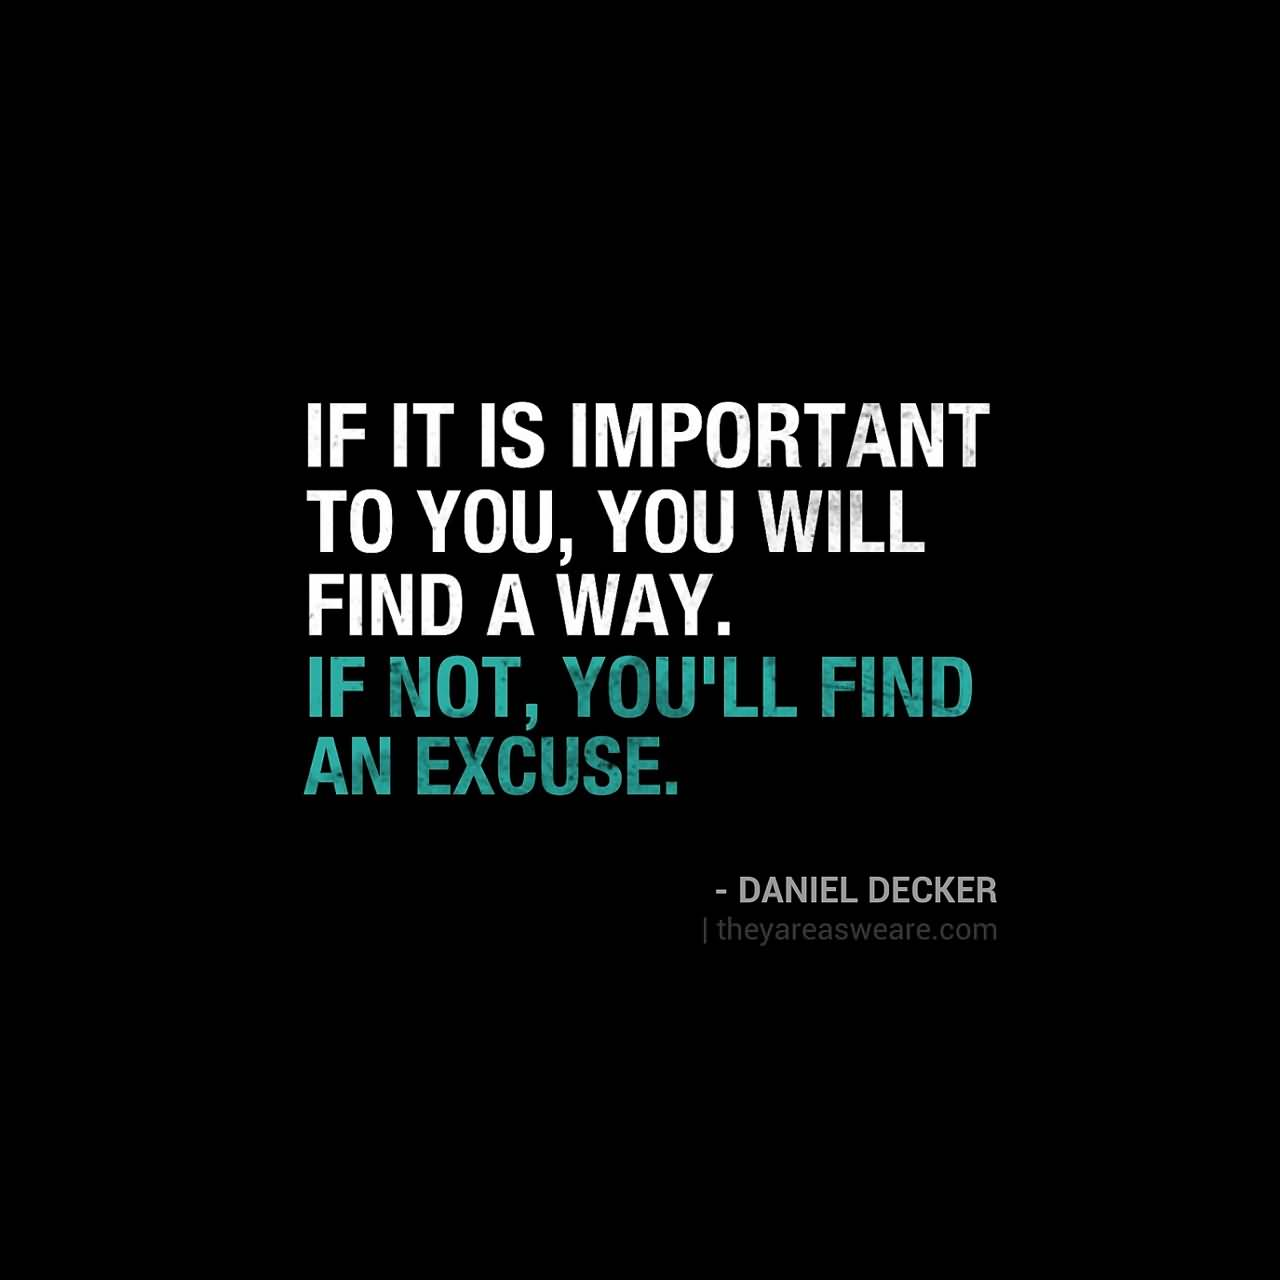 Famous Quotes About Excuses: Excuses Are For The Weak Quotations